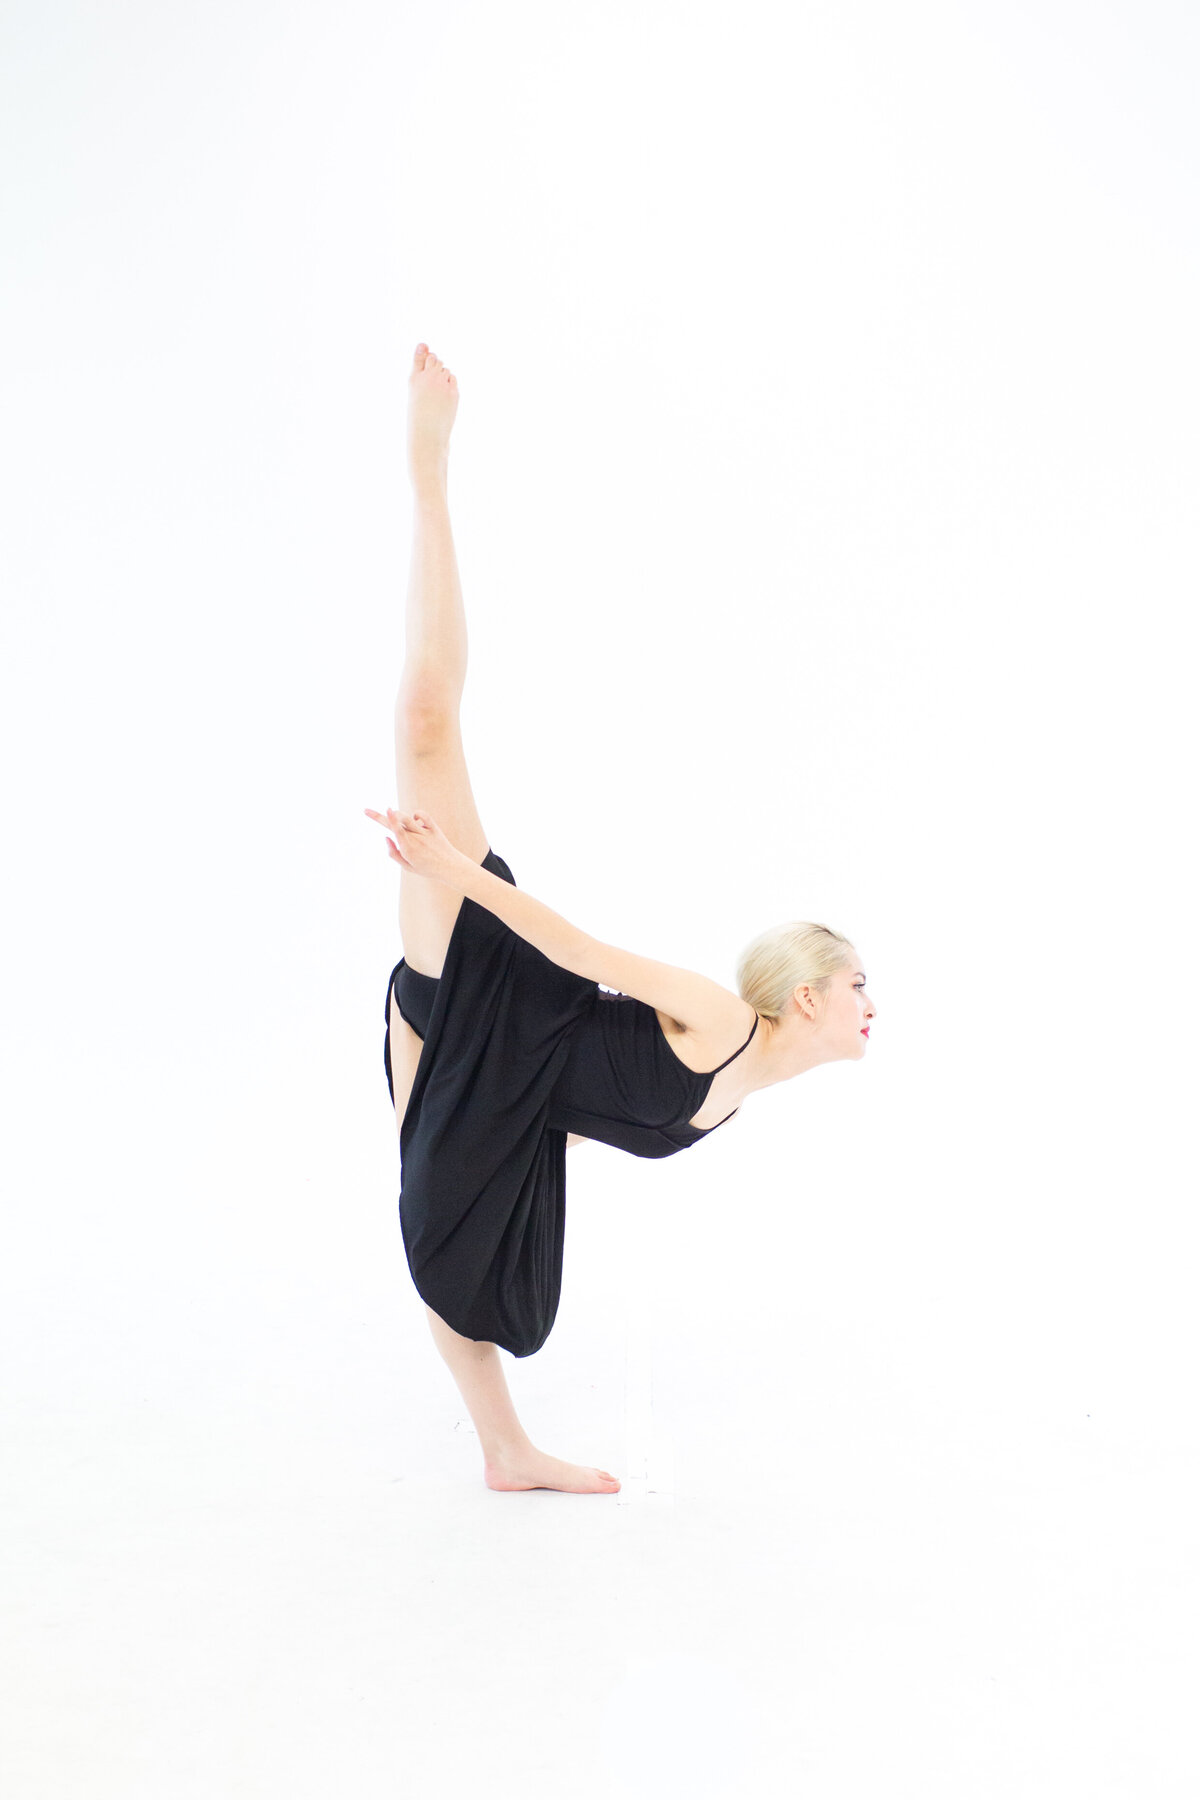 Showcase - Virginia Dance Photographer - Photography by Amy Nicole-876-4